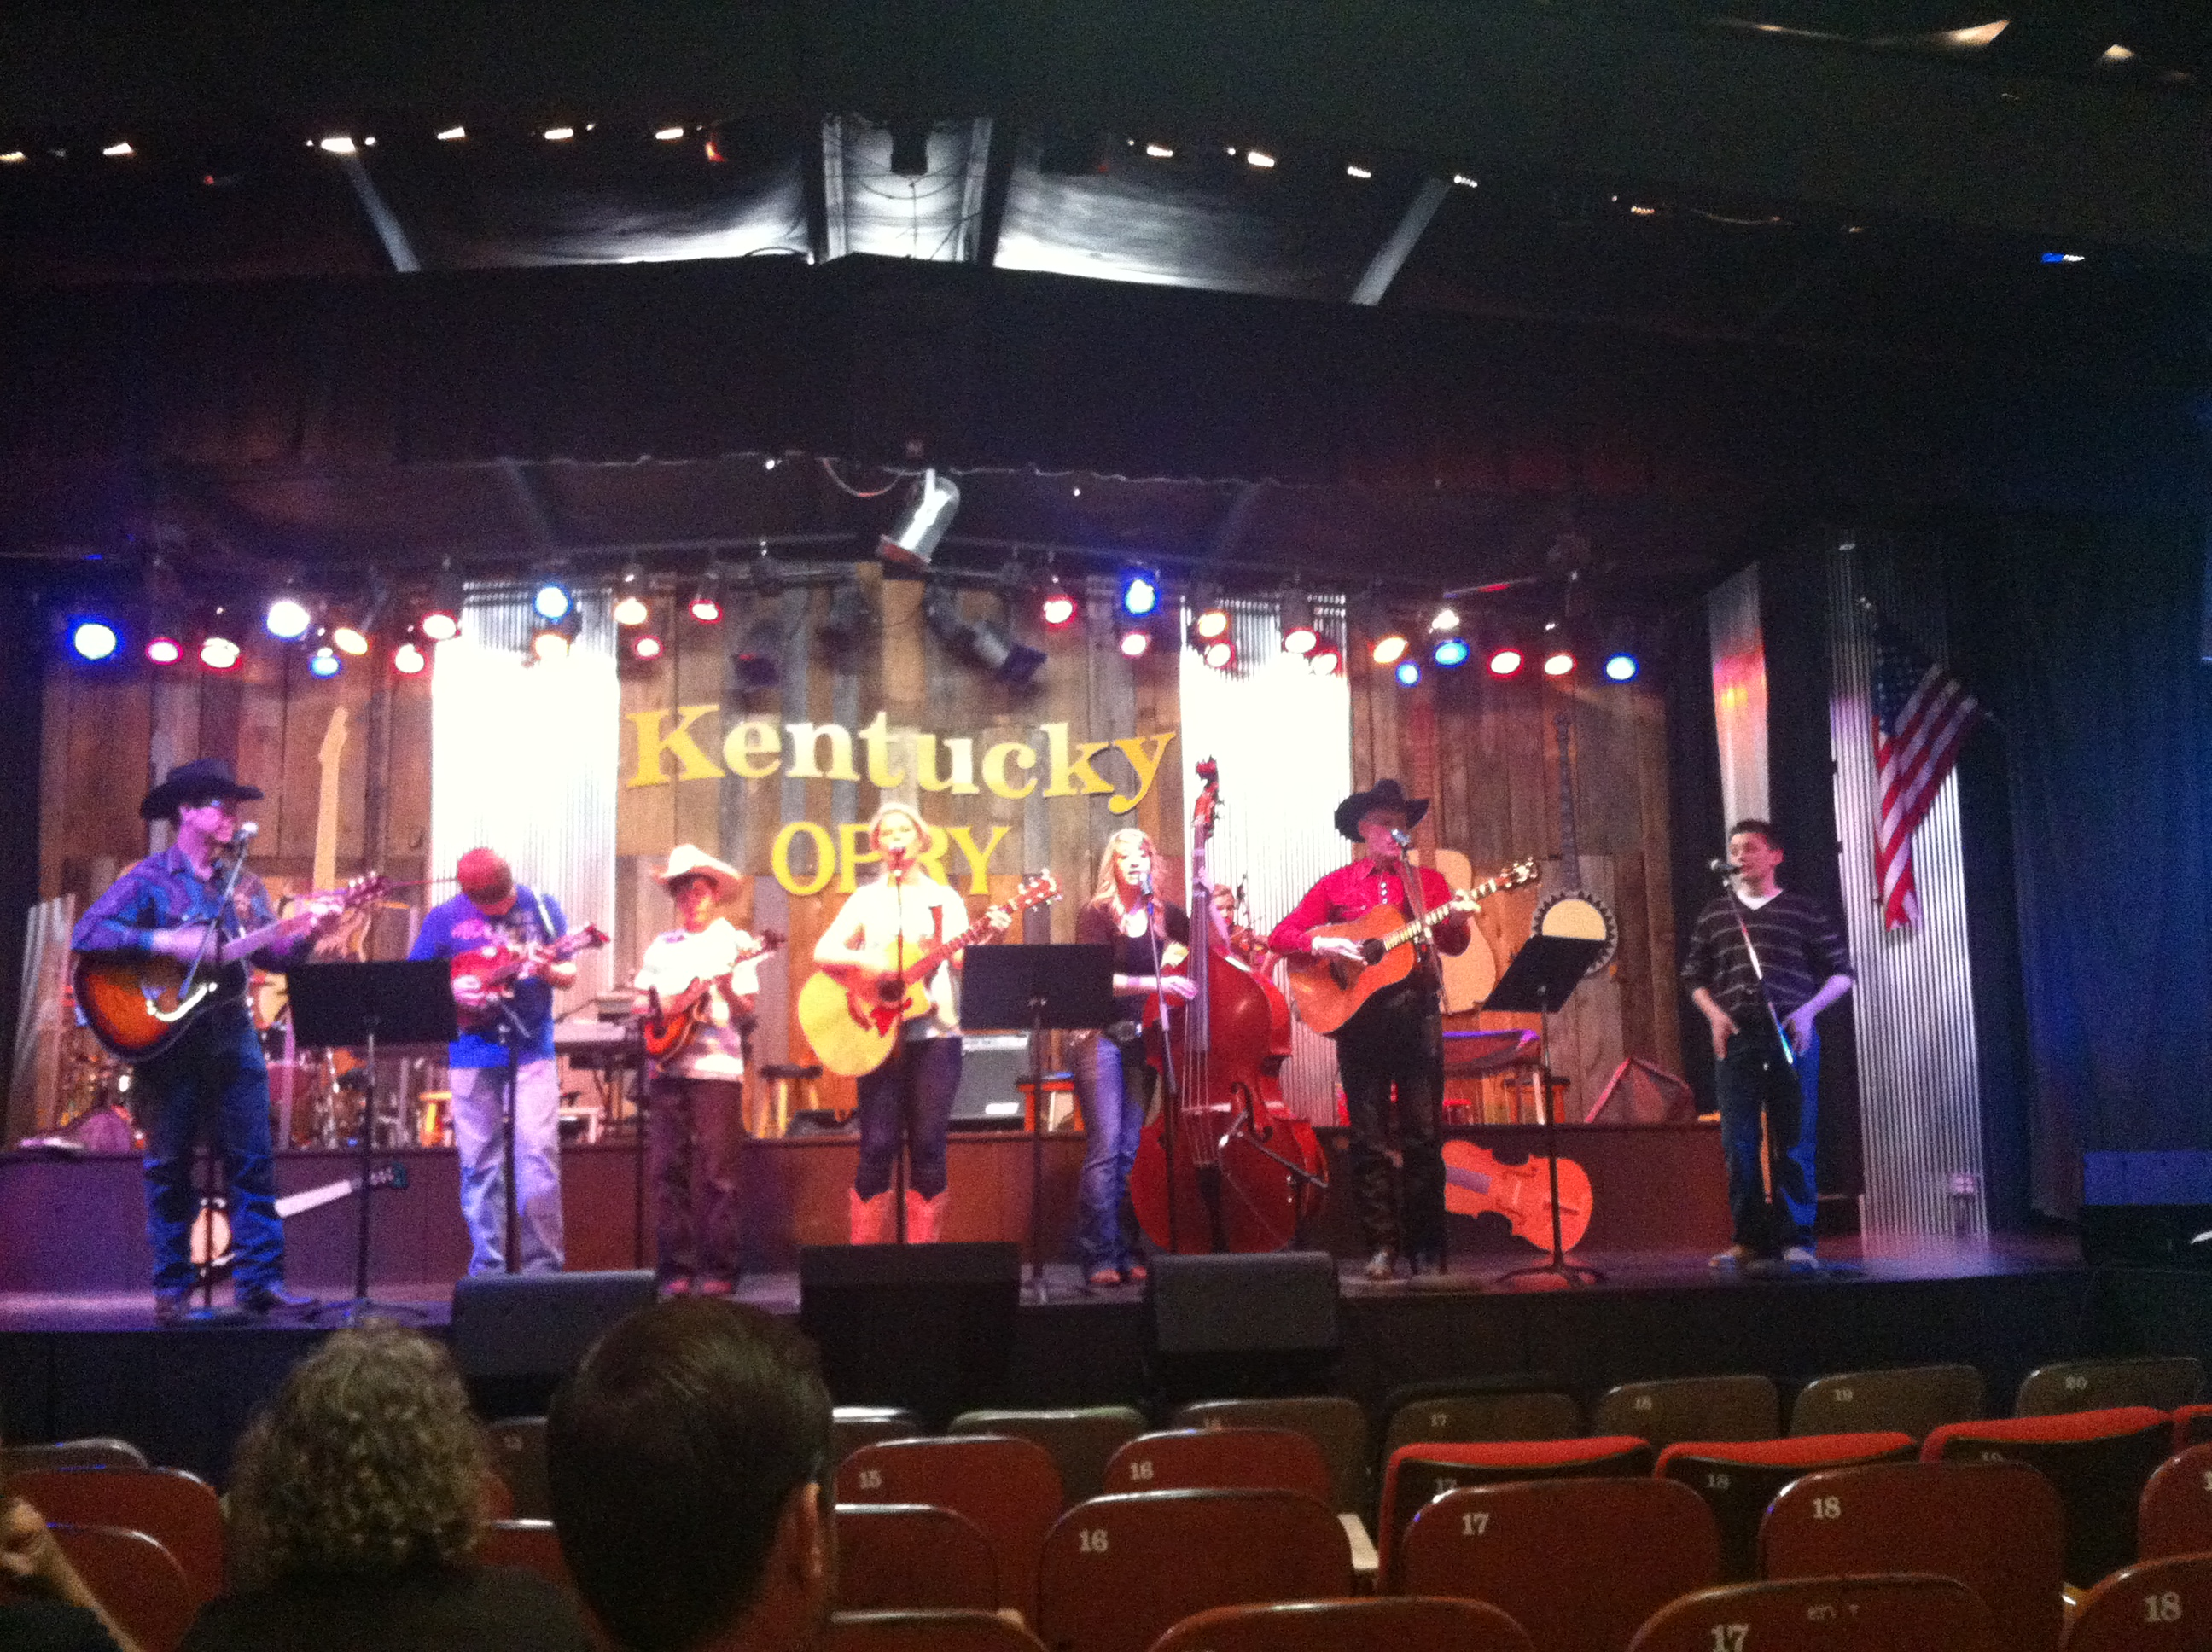 Jonathan's Performance at the Ky Opry!